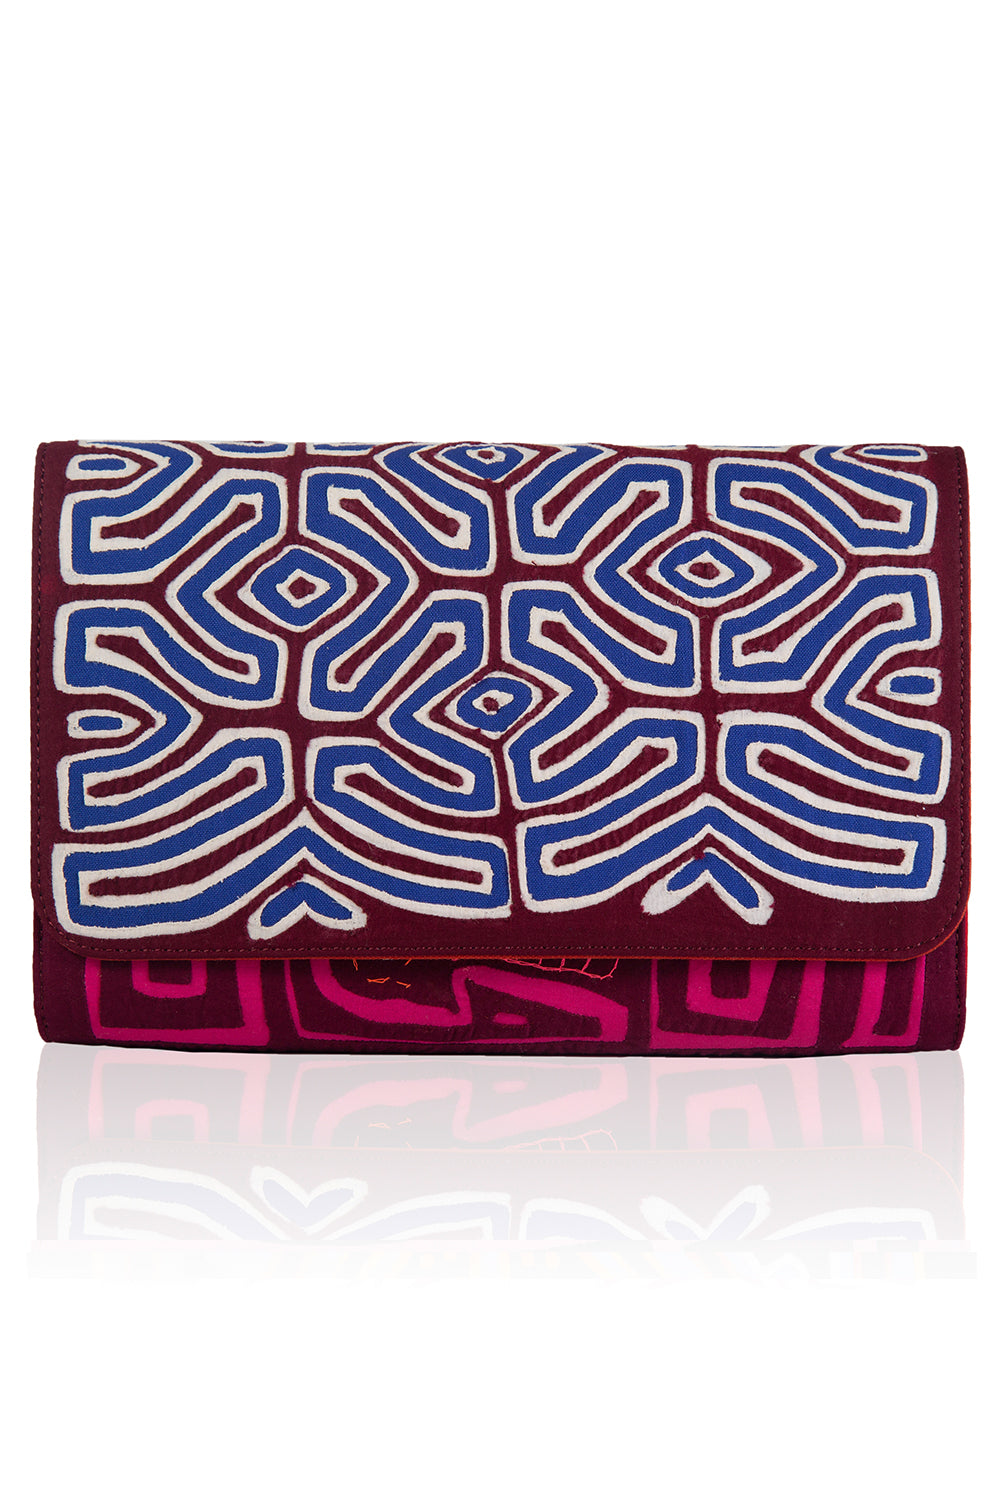 Vintage Clutch in Burgundy & Blue